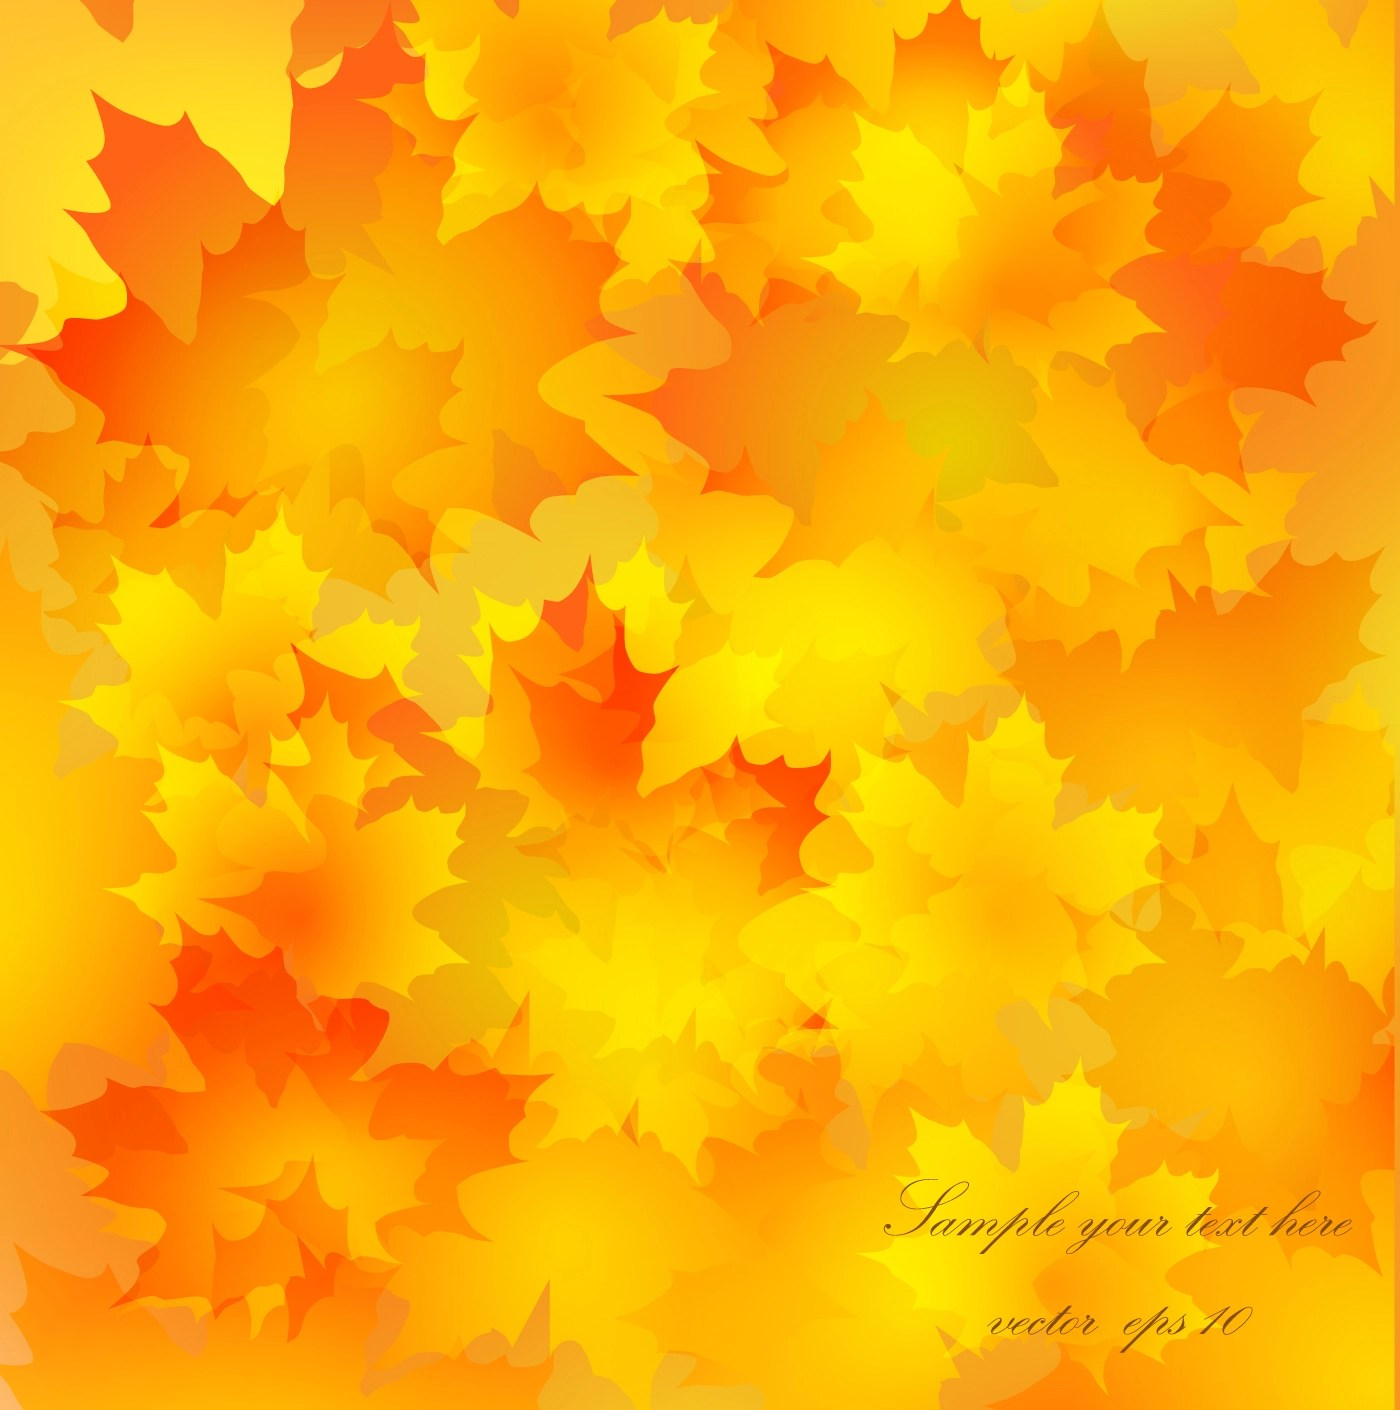 The Yellow Wallpaper Falling Action Autumn Golden Yellow Background Vector 06 Free Download